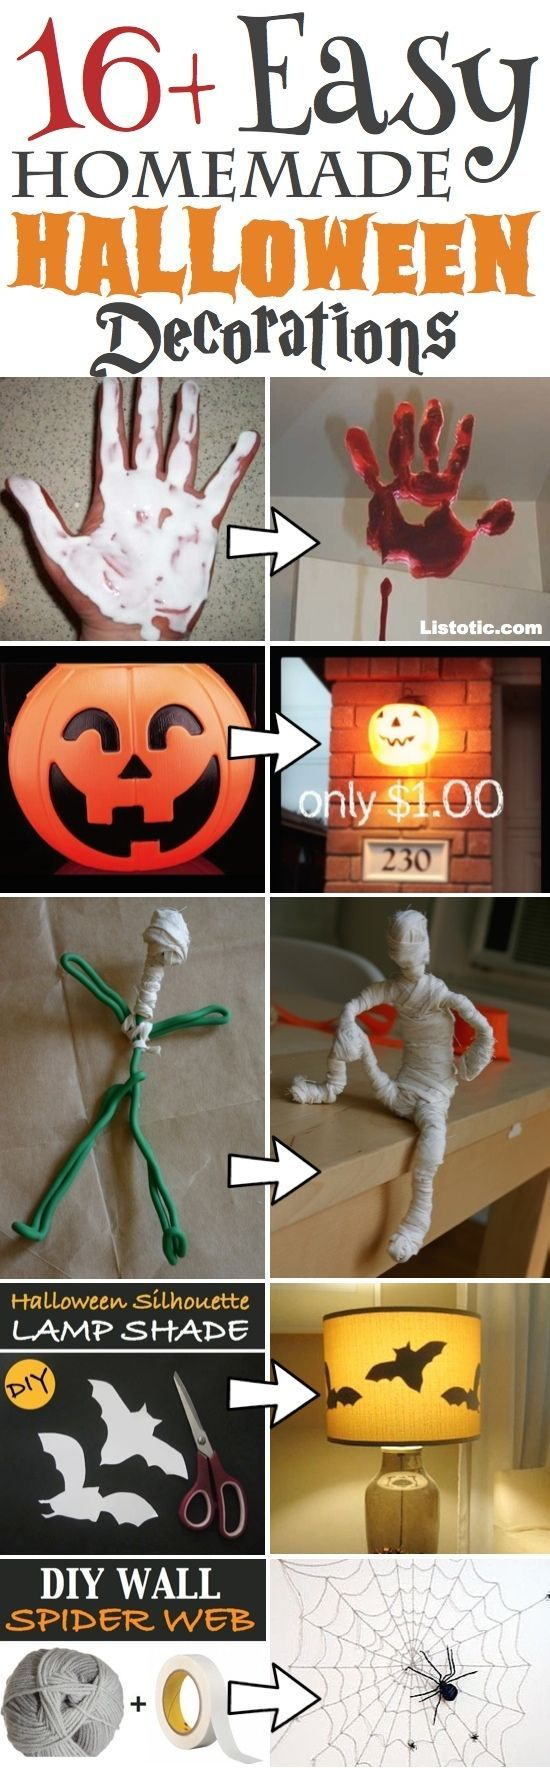 16+ Easy & Awesome Homemade Halloween Decorations